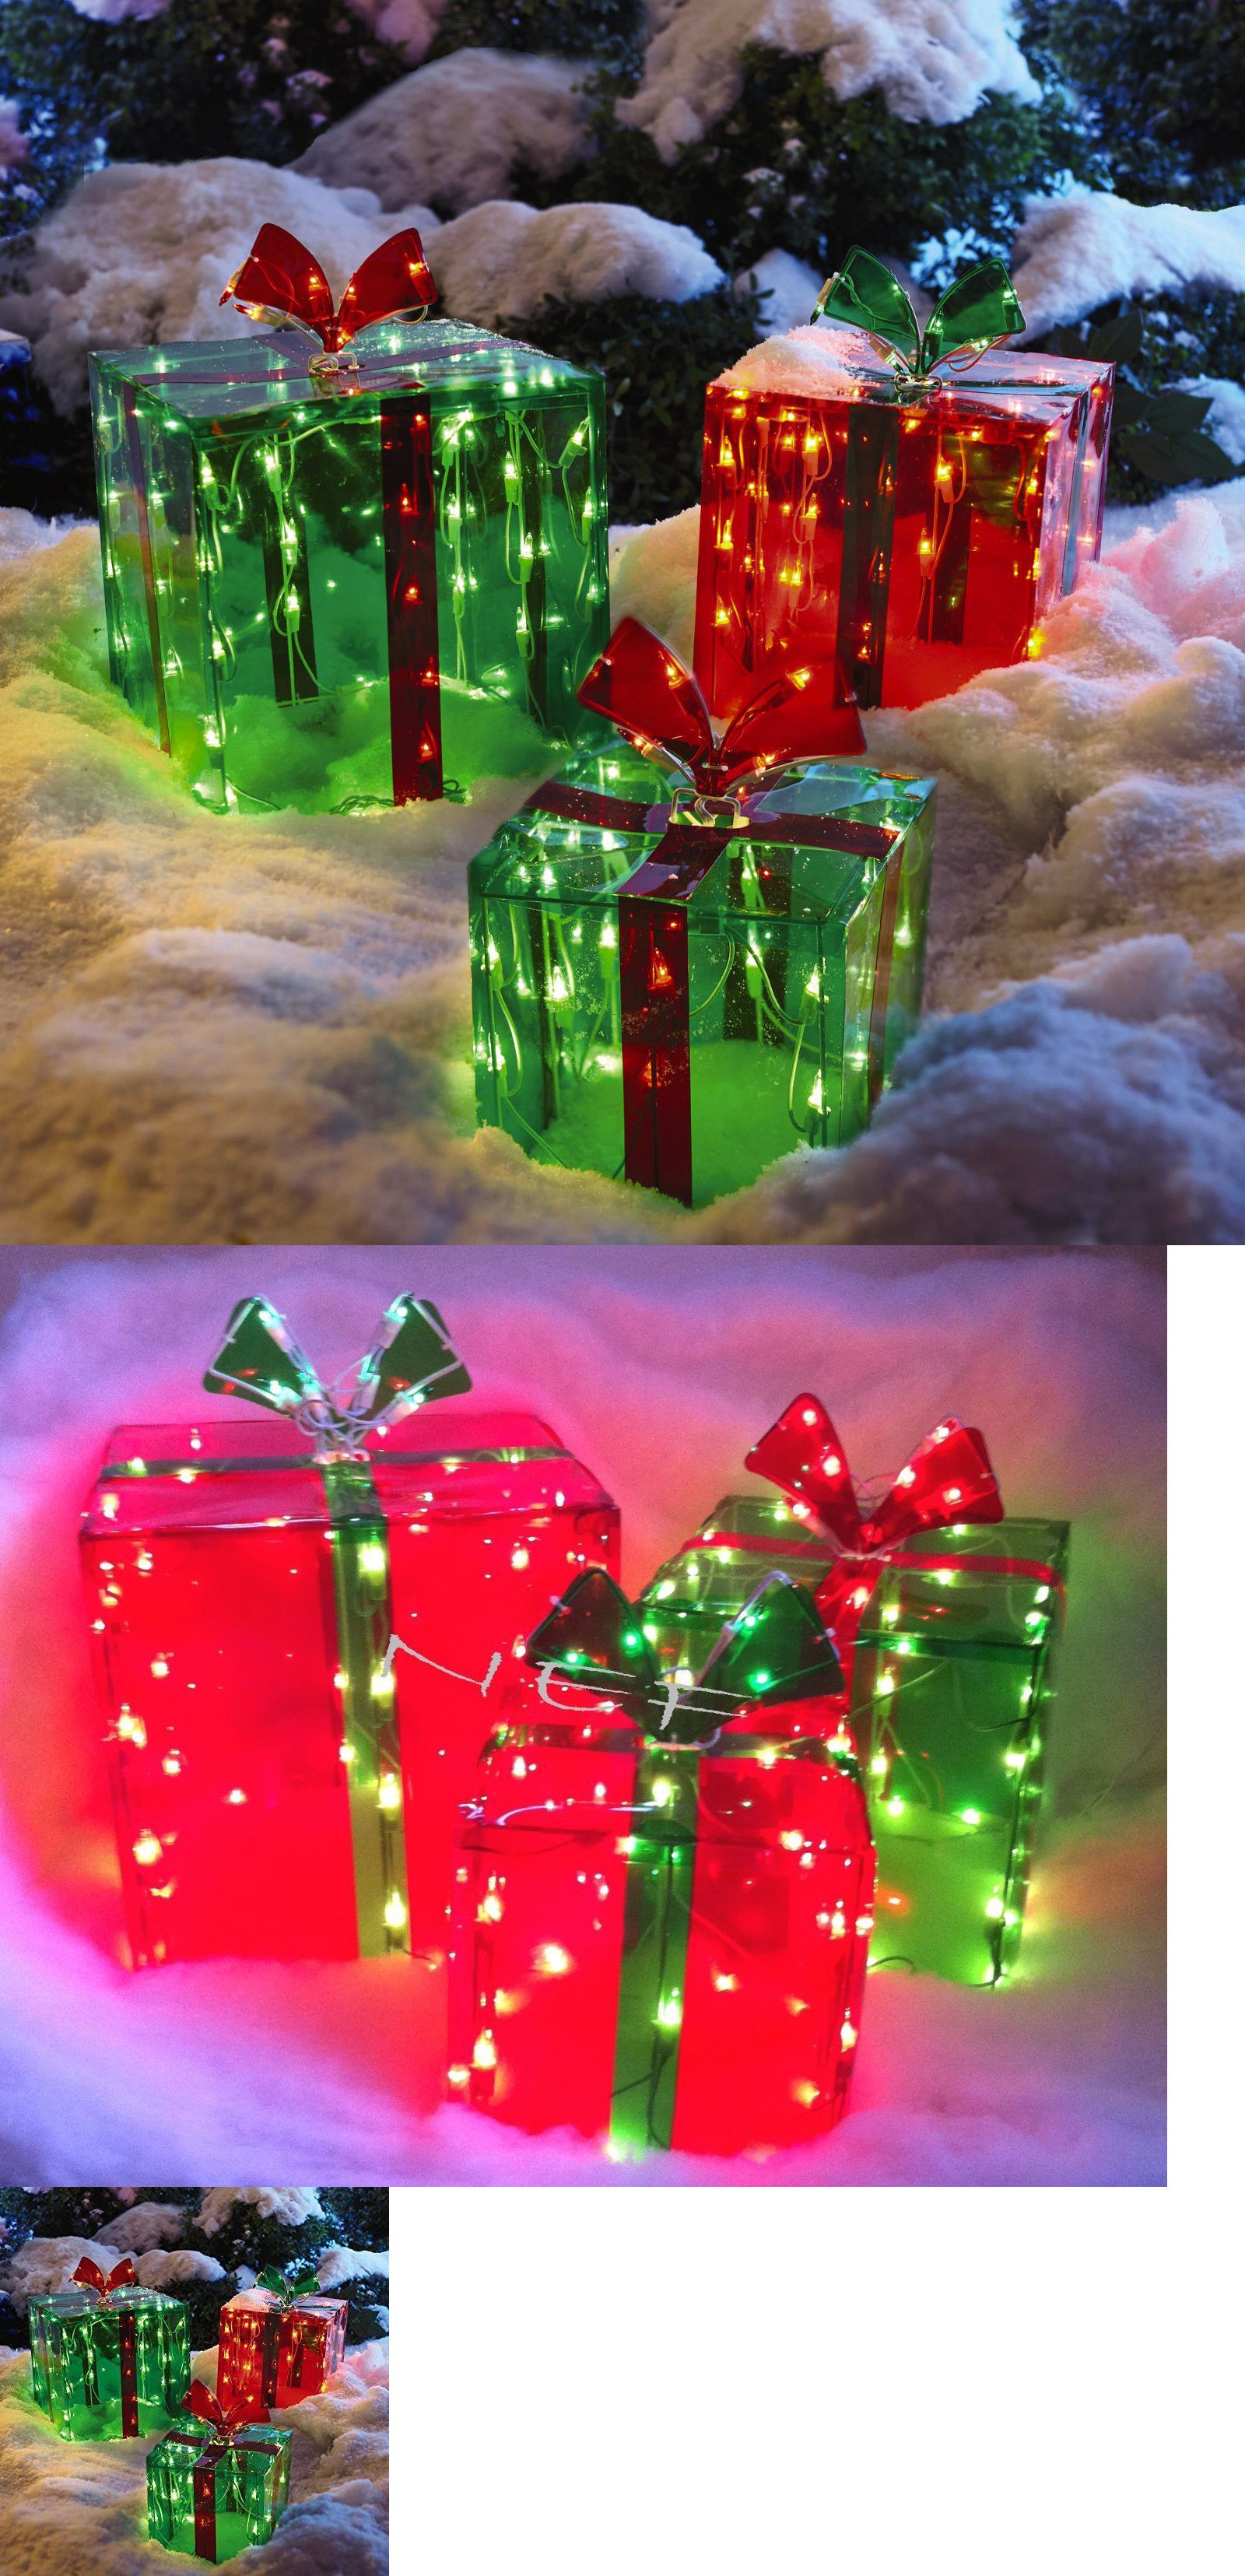 yard d cor 156812 3 lighted gift boxes christmas decoration yard decor 150 lights indoor - Lighted Gift Boxes Christmas Decorations